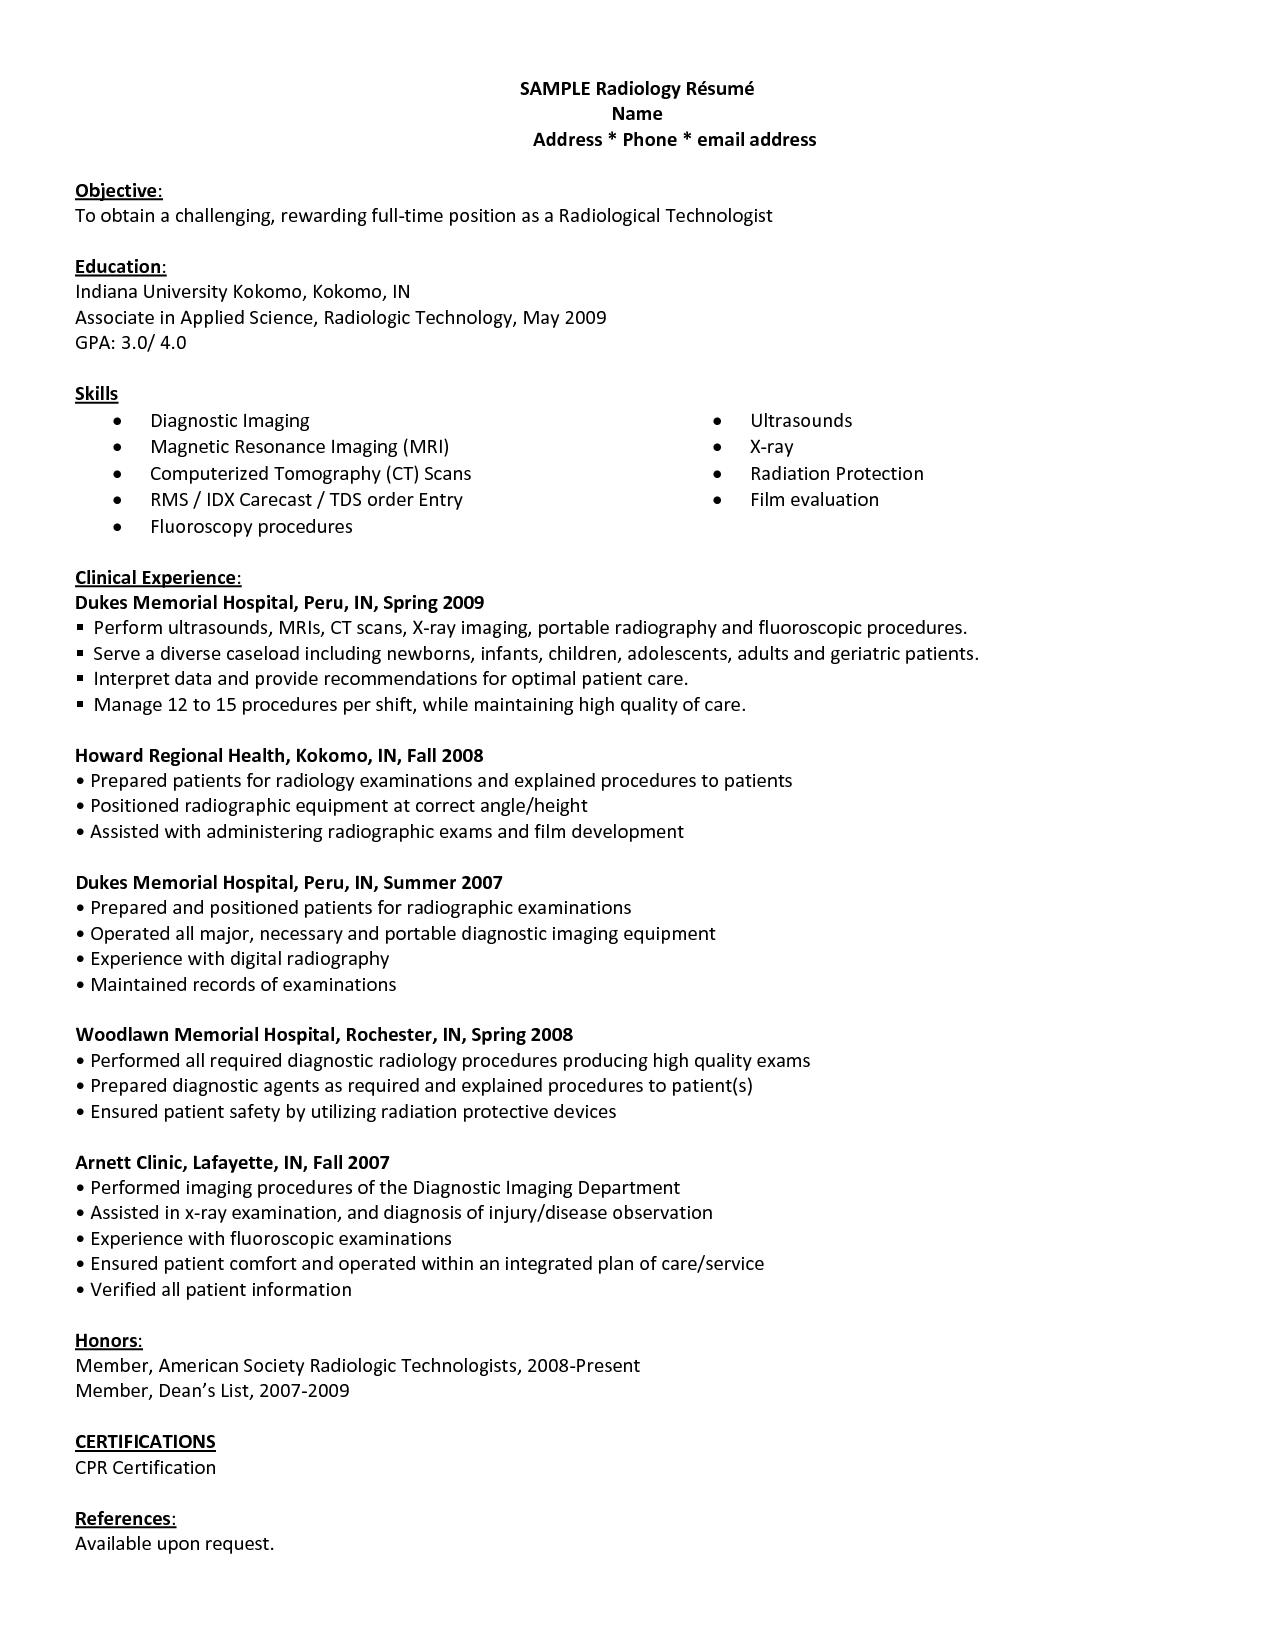 resume sample radiologic technologist